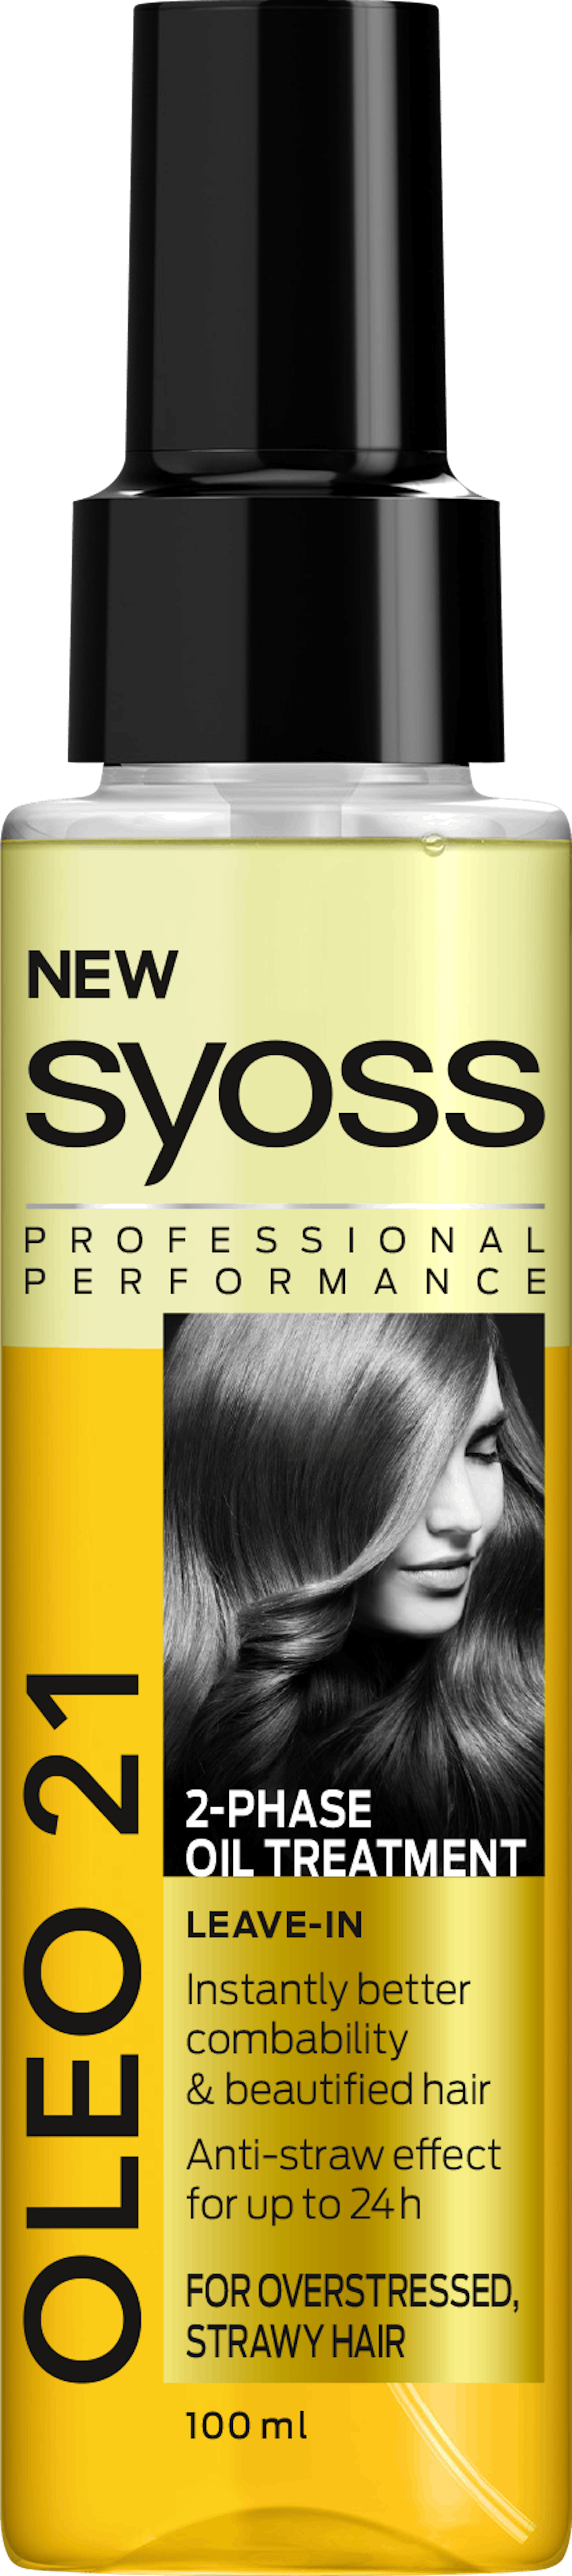 Syoss Oleo 21 Oil Treatment Leave-in